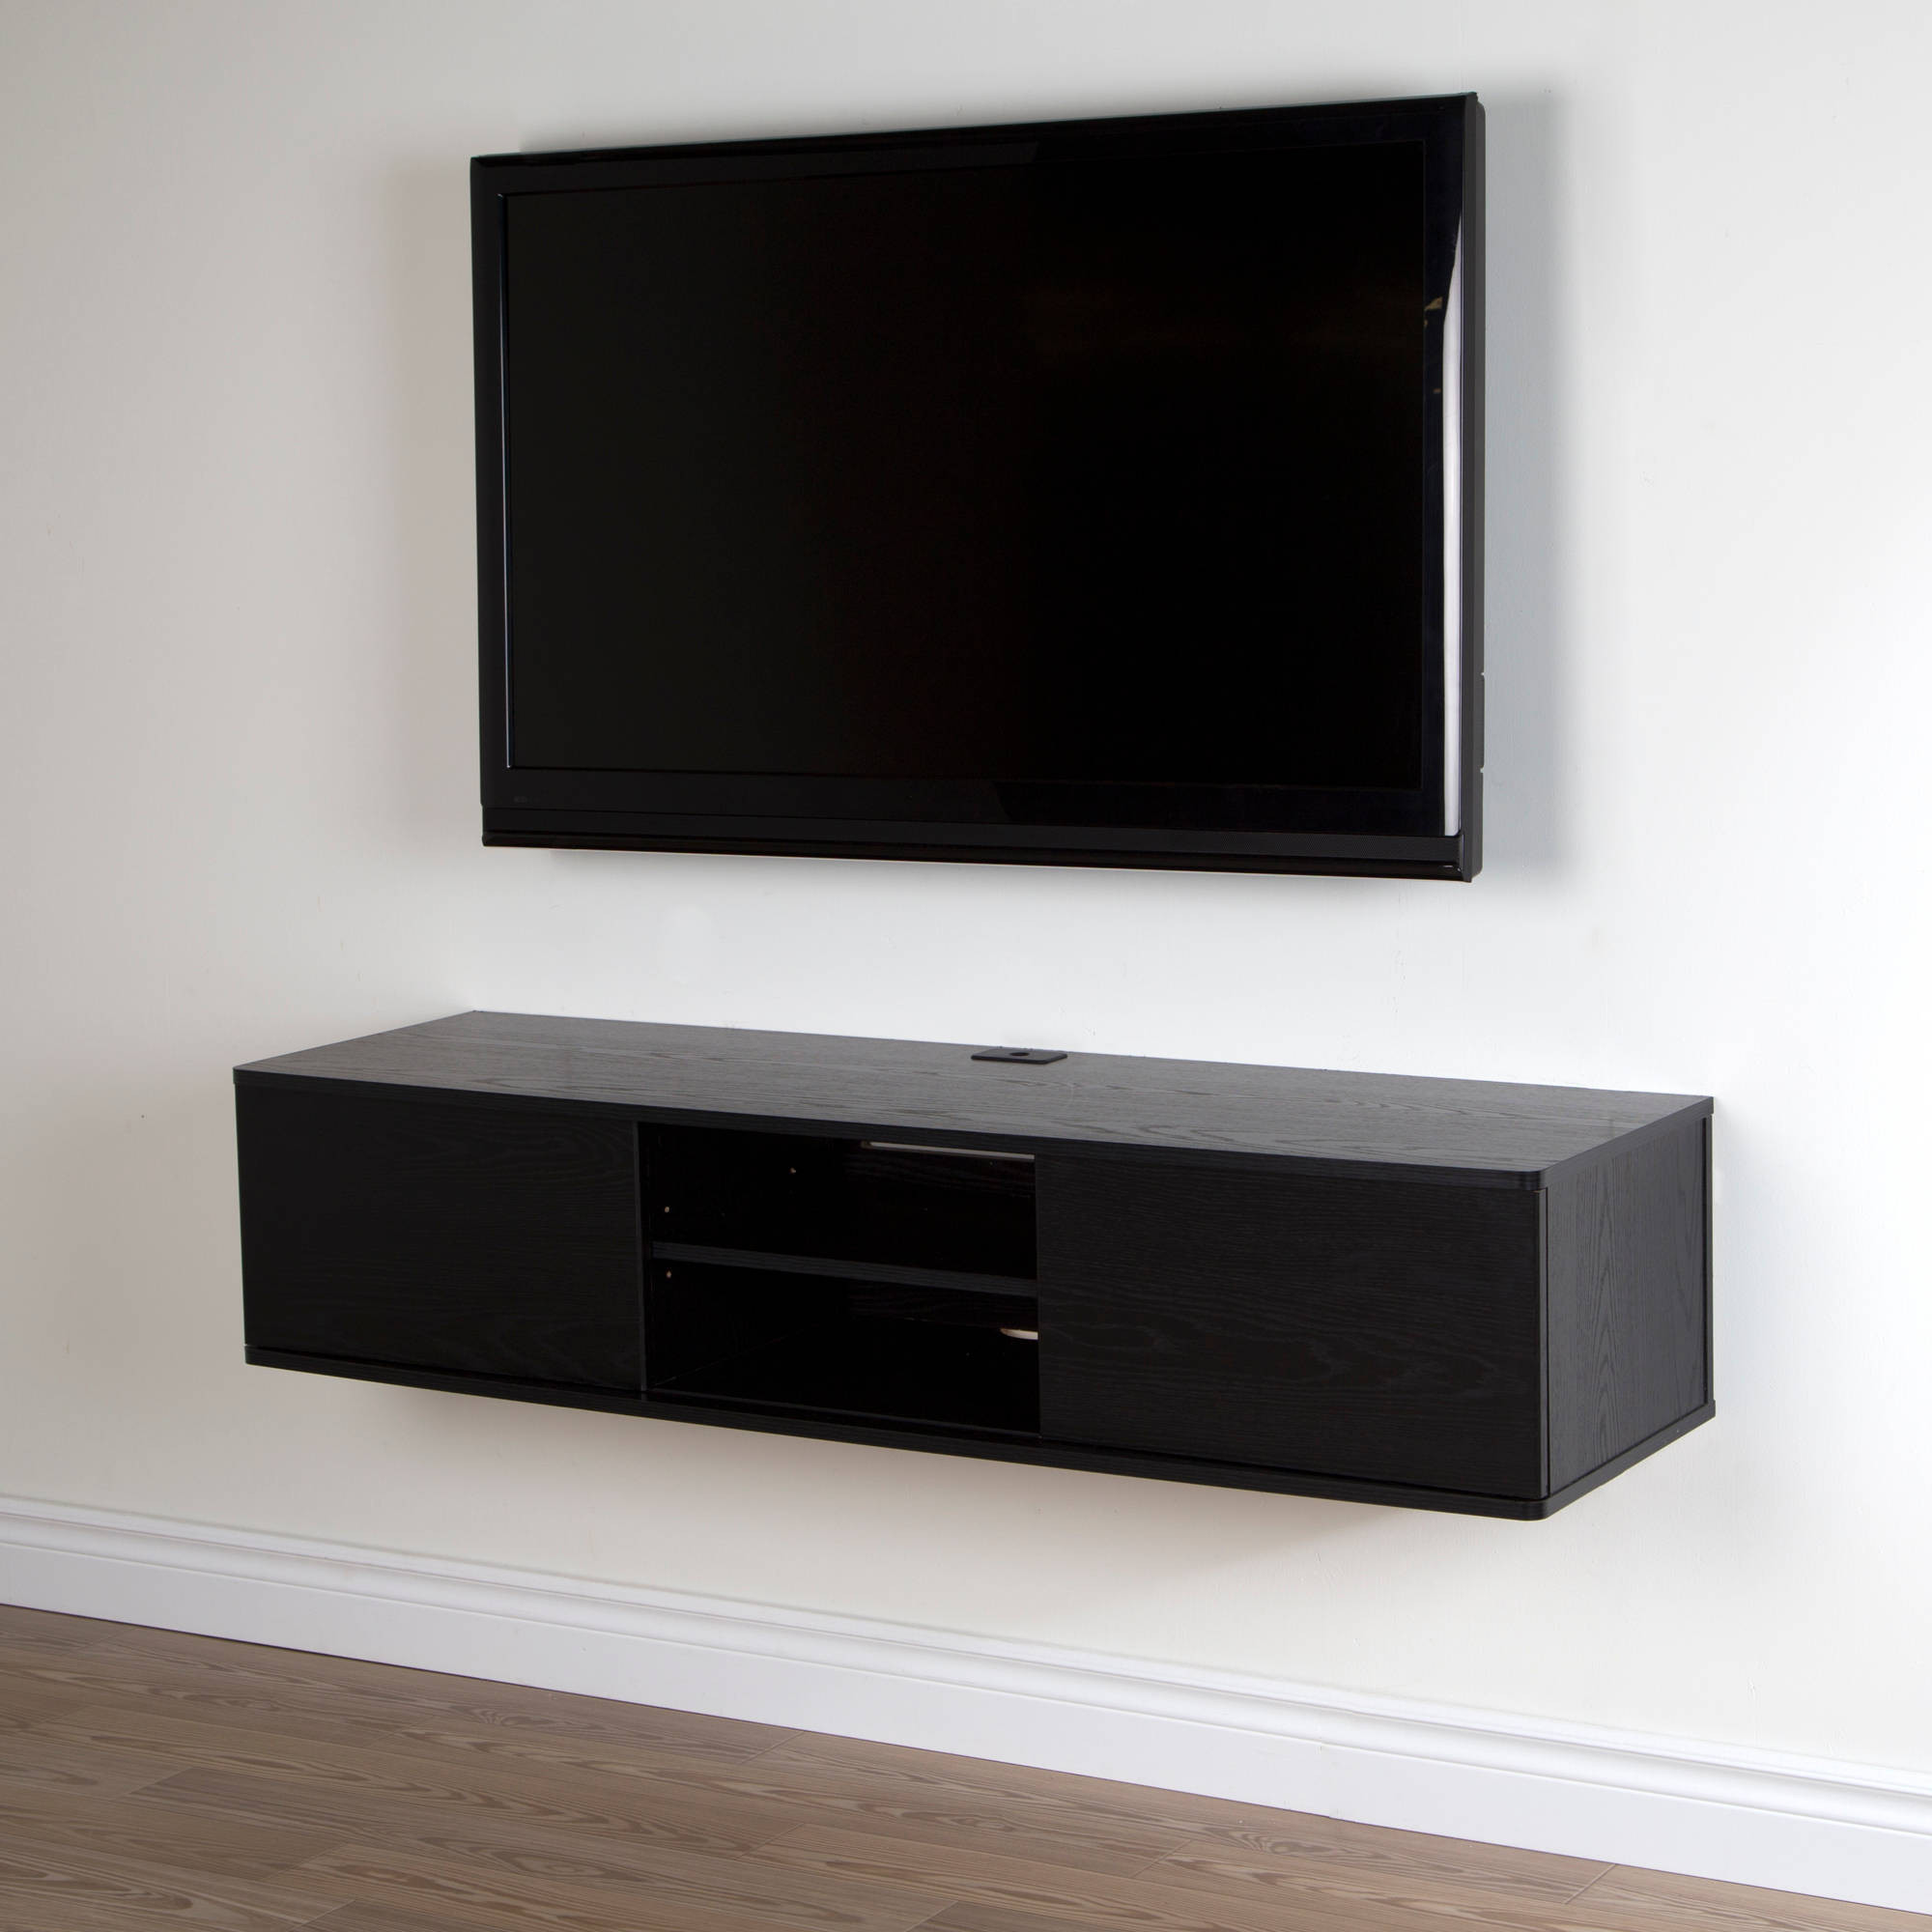 Best ideas about Wall Mount Tv Stand . Save or Pin South Shore Agora Wall Mounted TV Stand For TVs up to 56 Now.